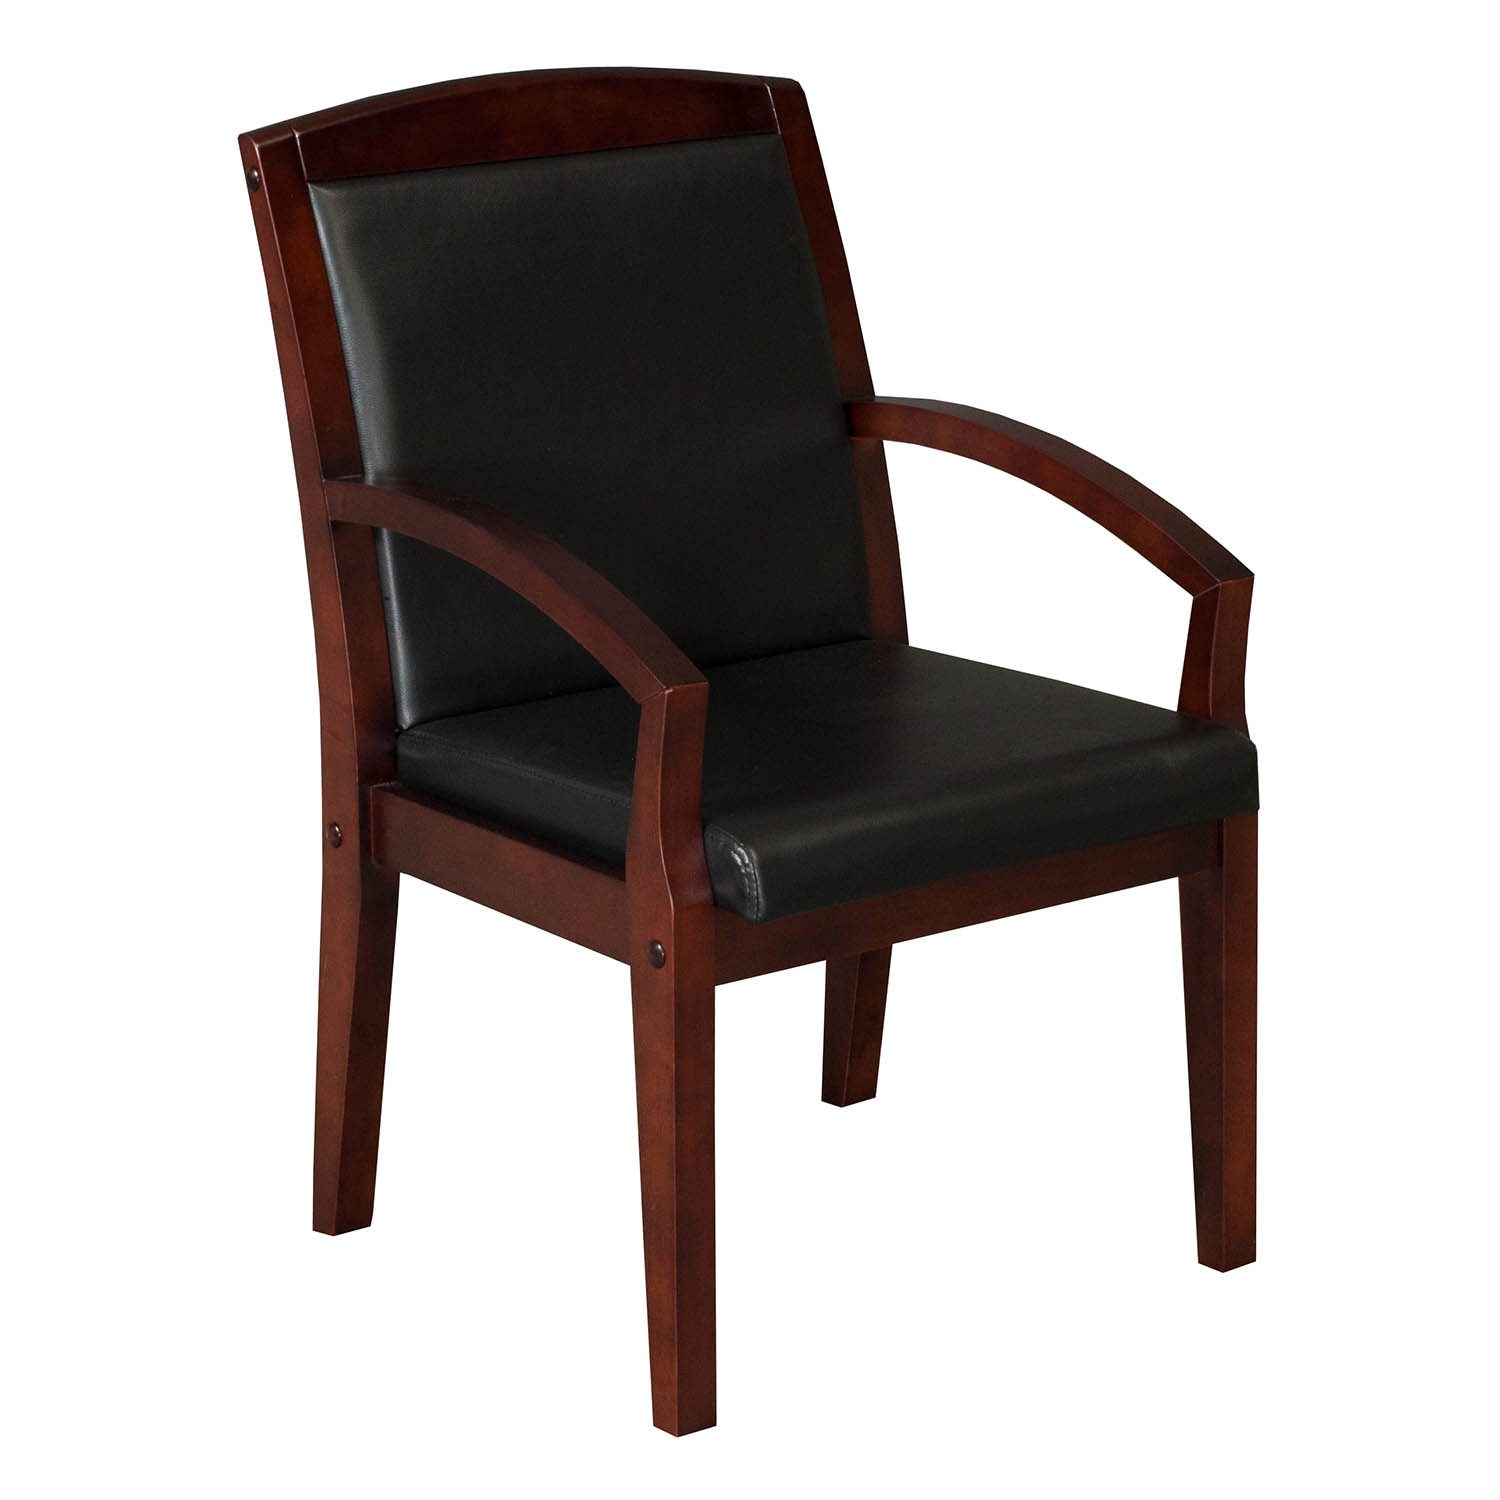 Cherry Chairs Anchor By Gosit New Executive Pu Leather Wood Side Chair